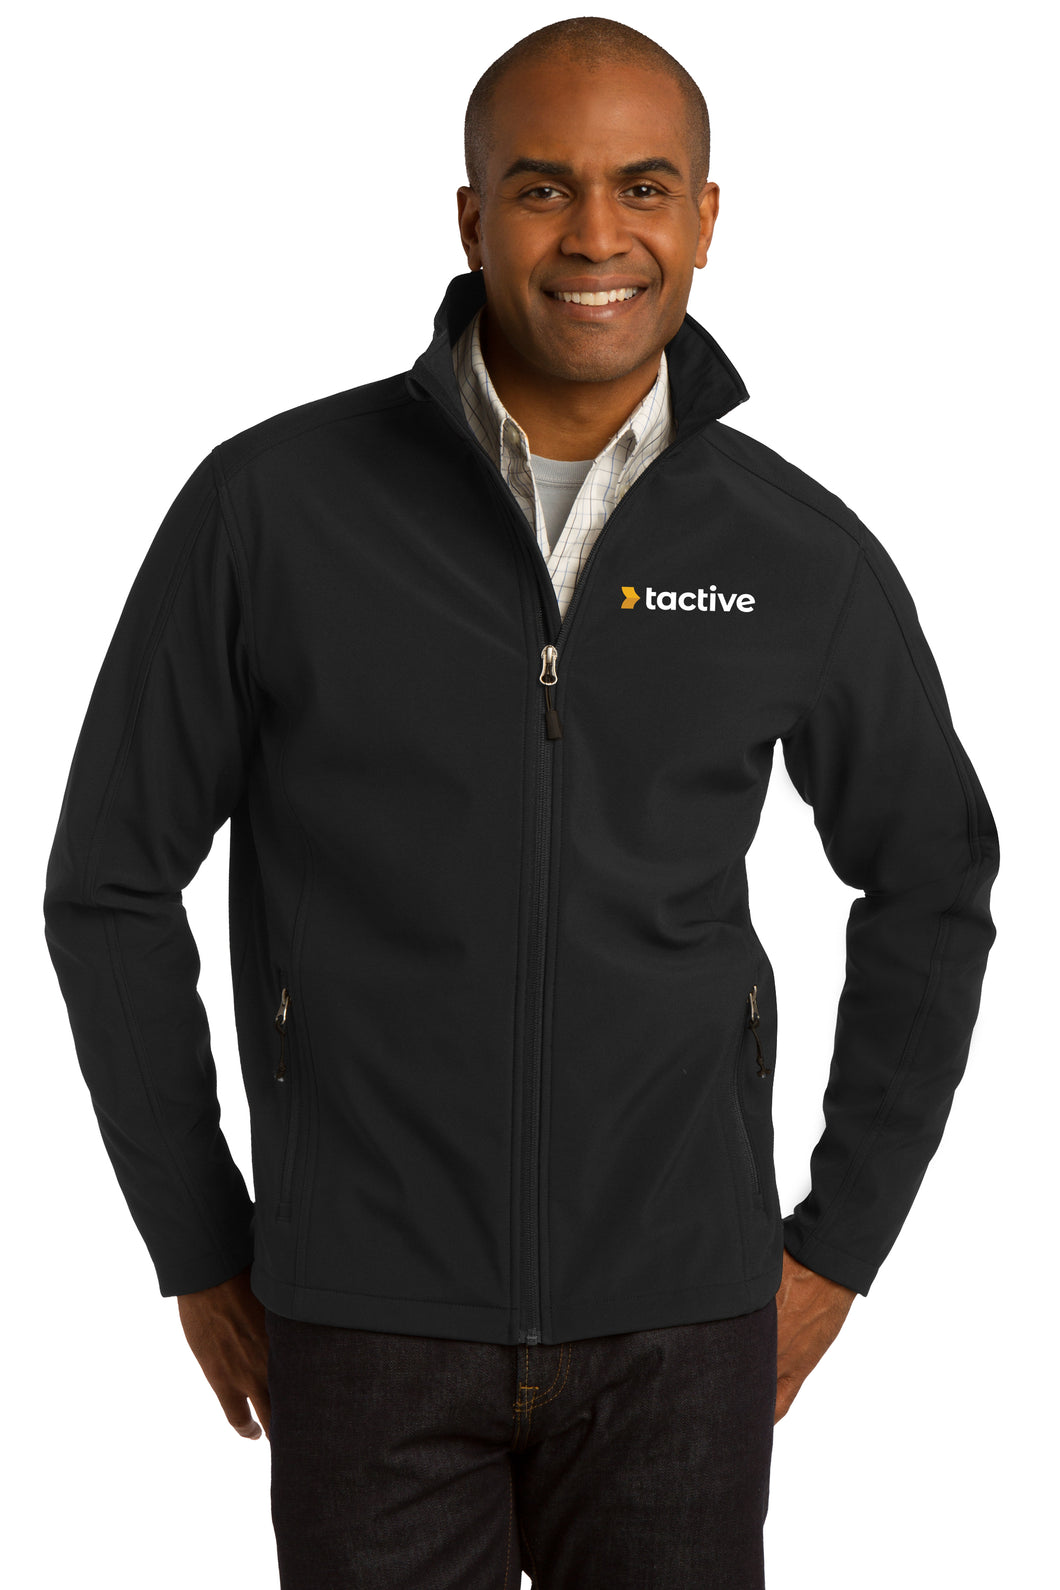 Tactive Tall Core Soft Shell Jacket